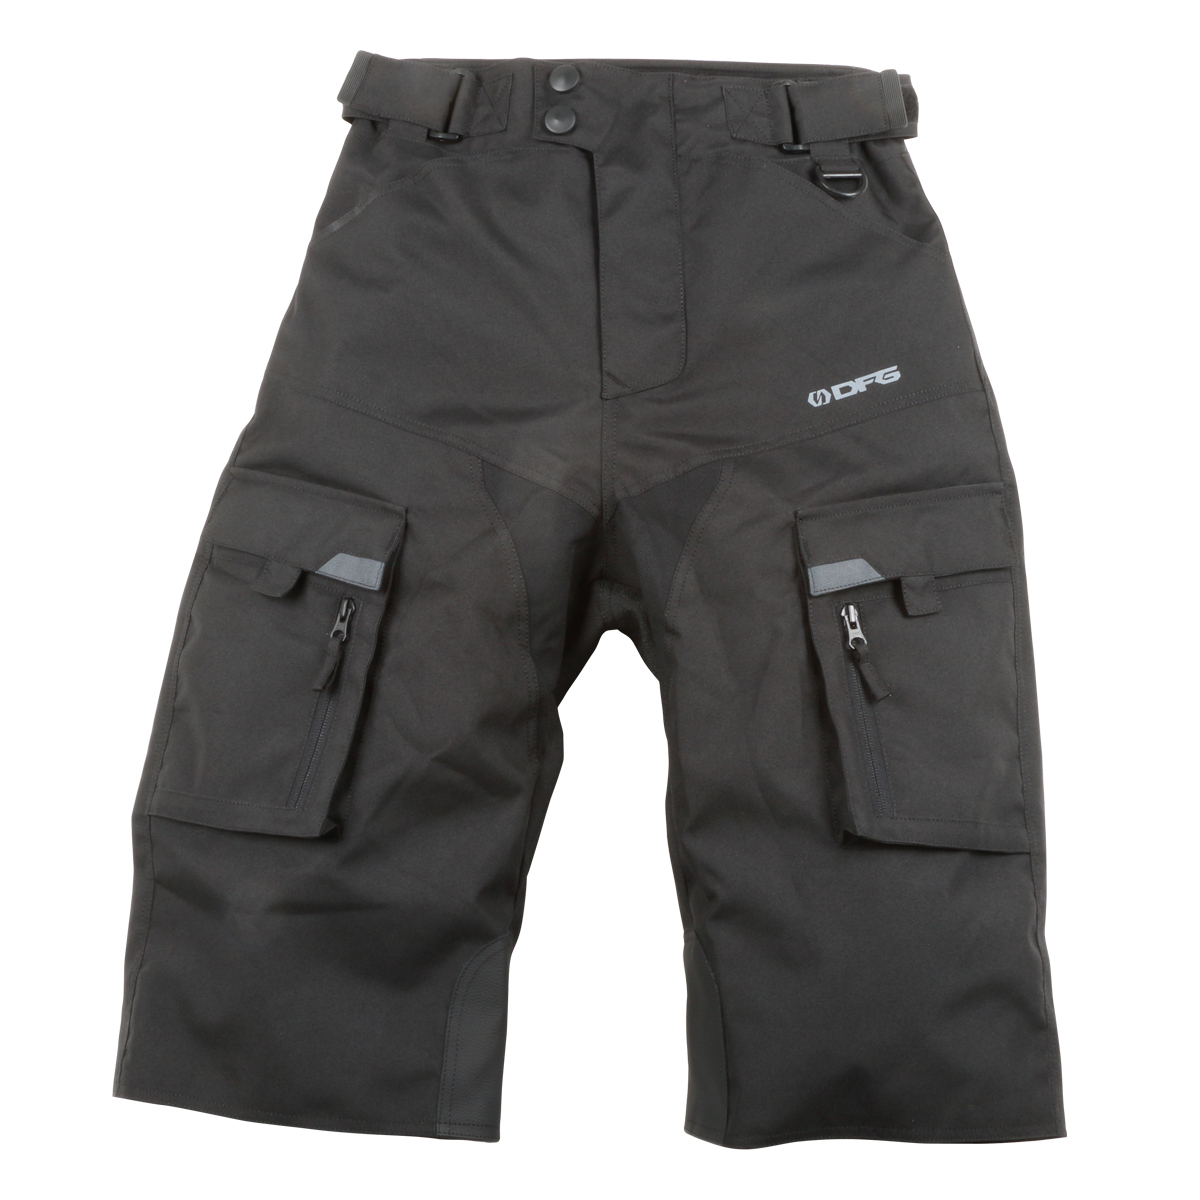 DIVISION CARGO SHORTS